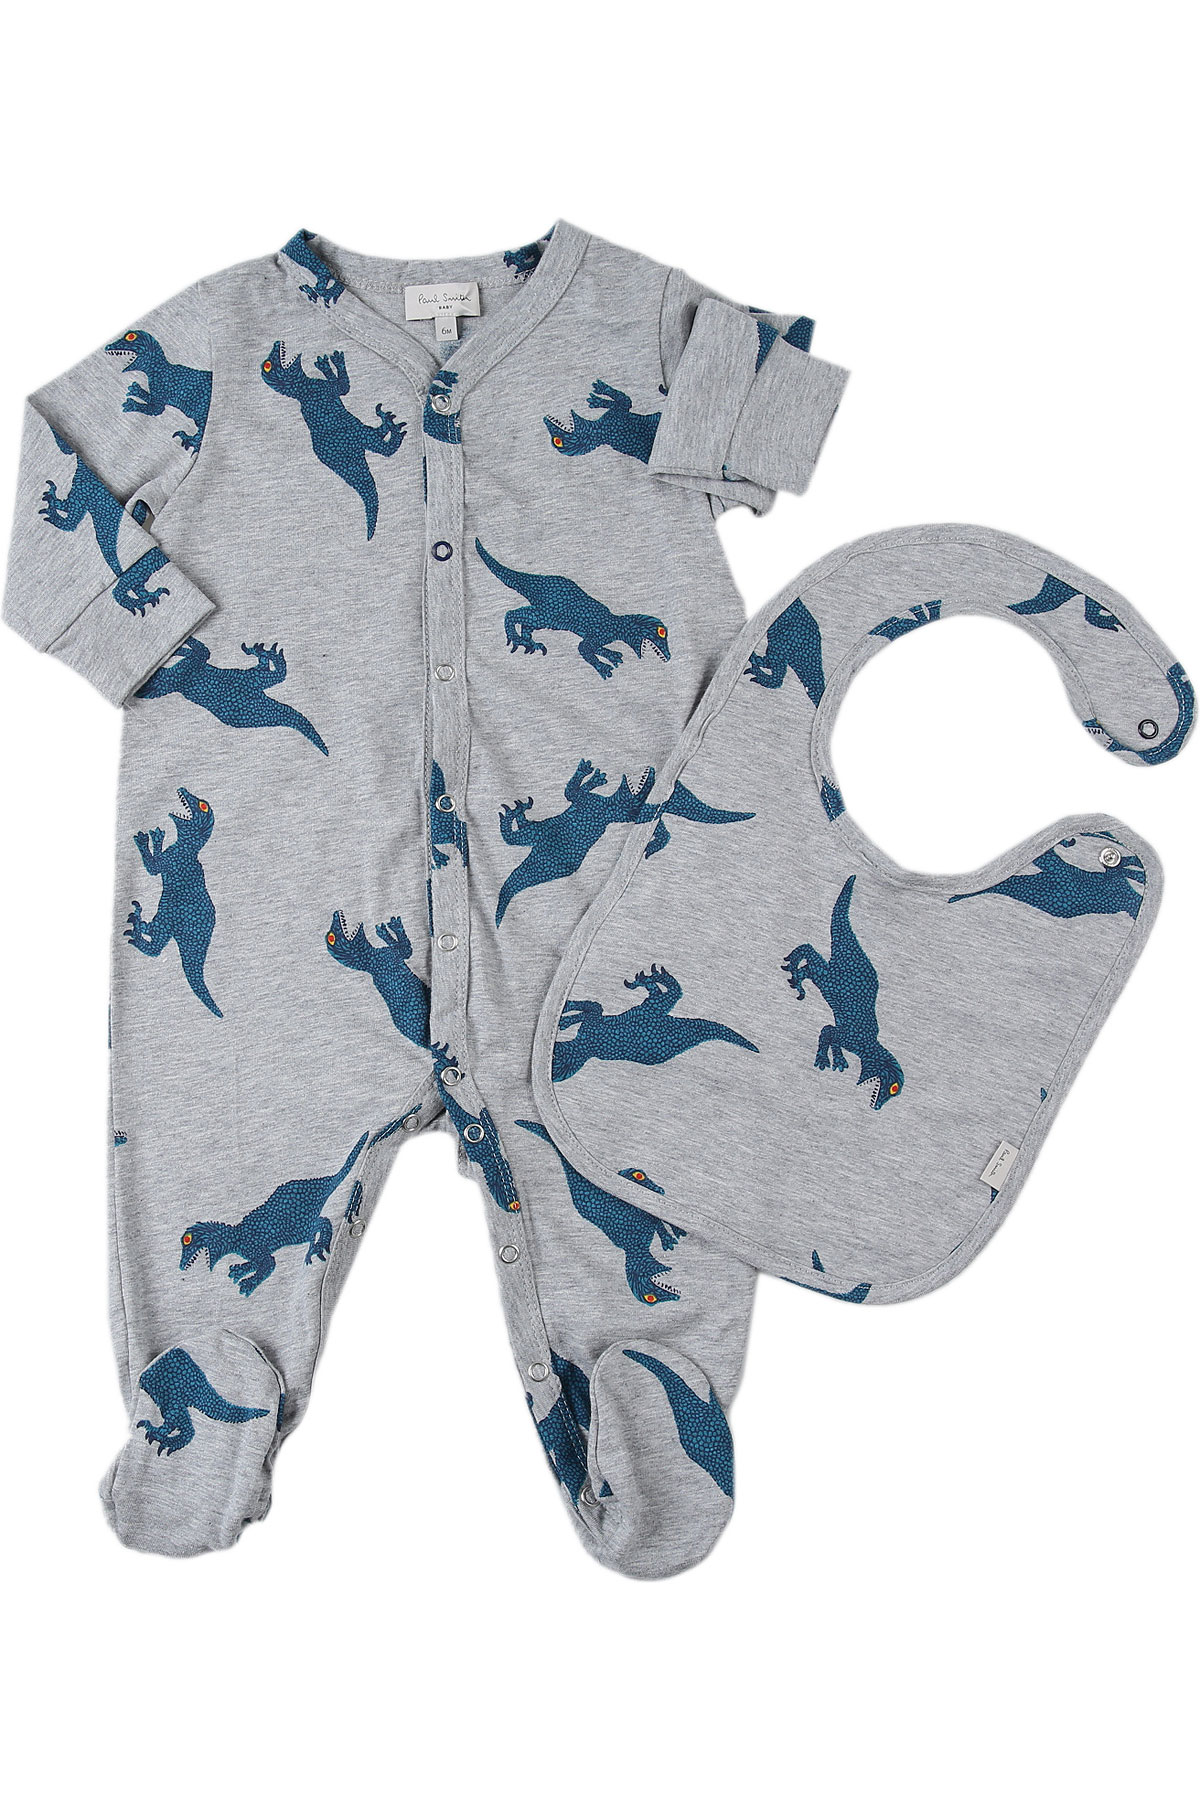 Paul Smith Baby Bodysuits & Onesies for Boys On Sale, Marl Grey, Cotton, 2019, 1M 3M 6M 9M